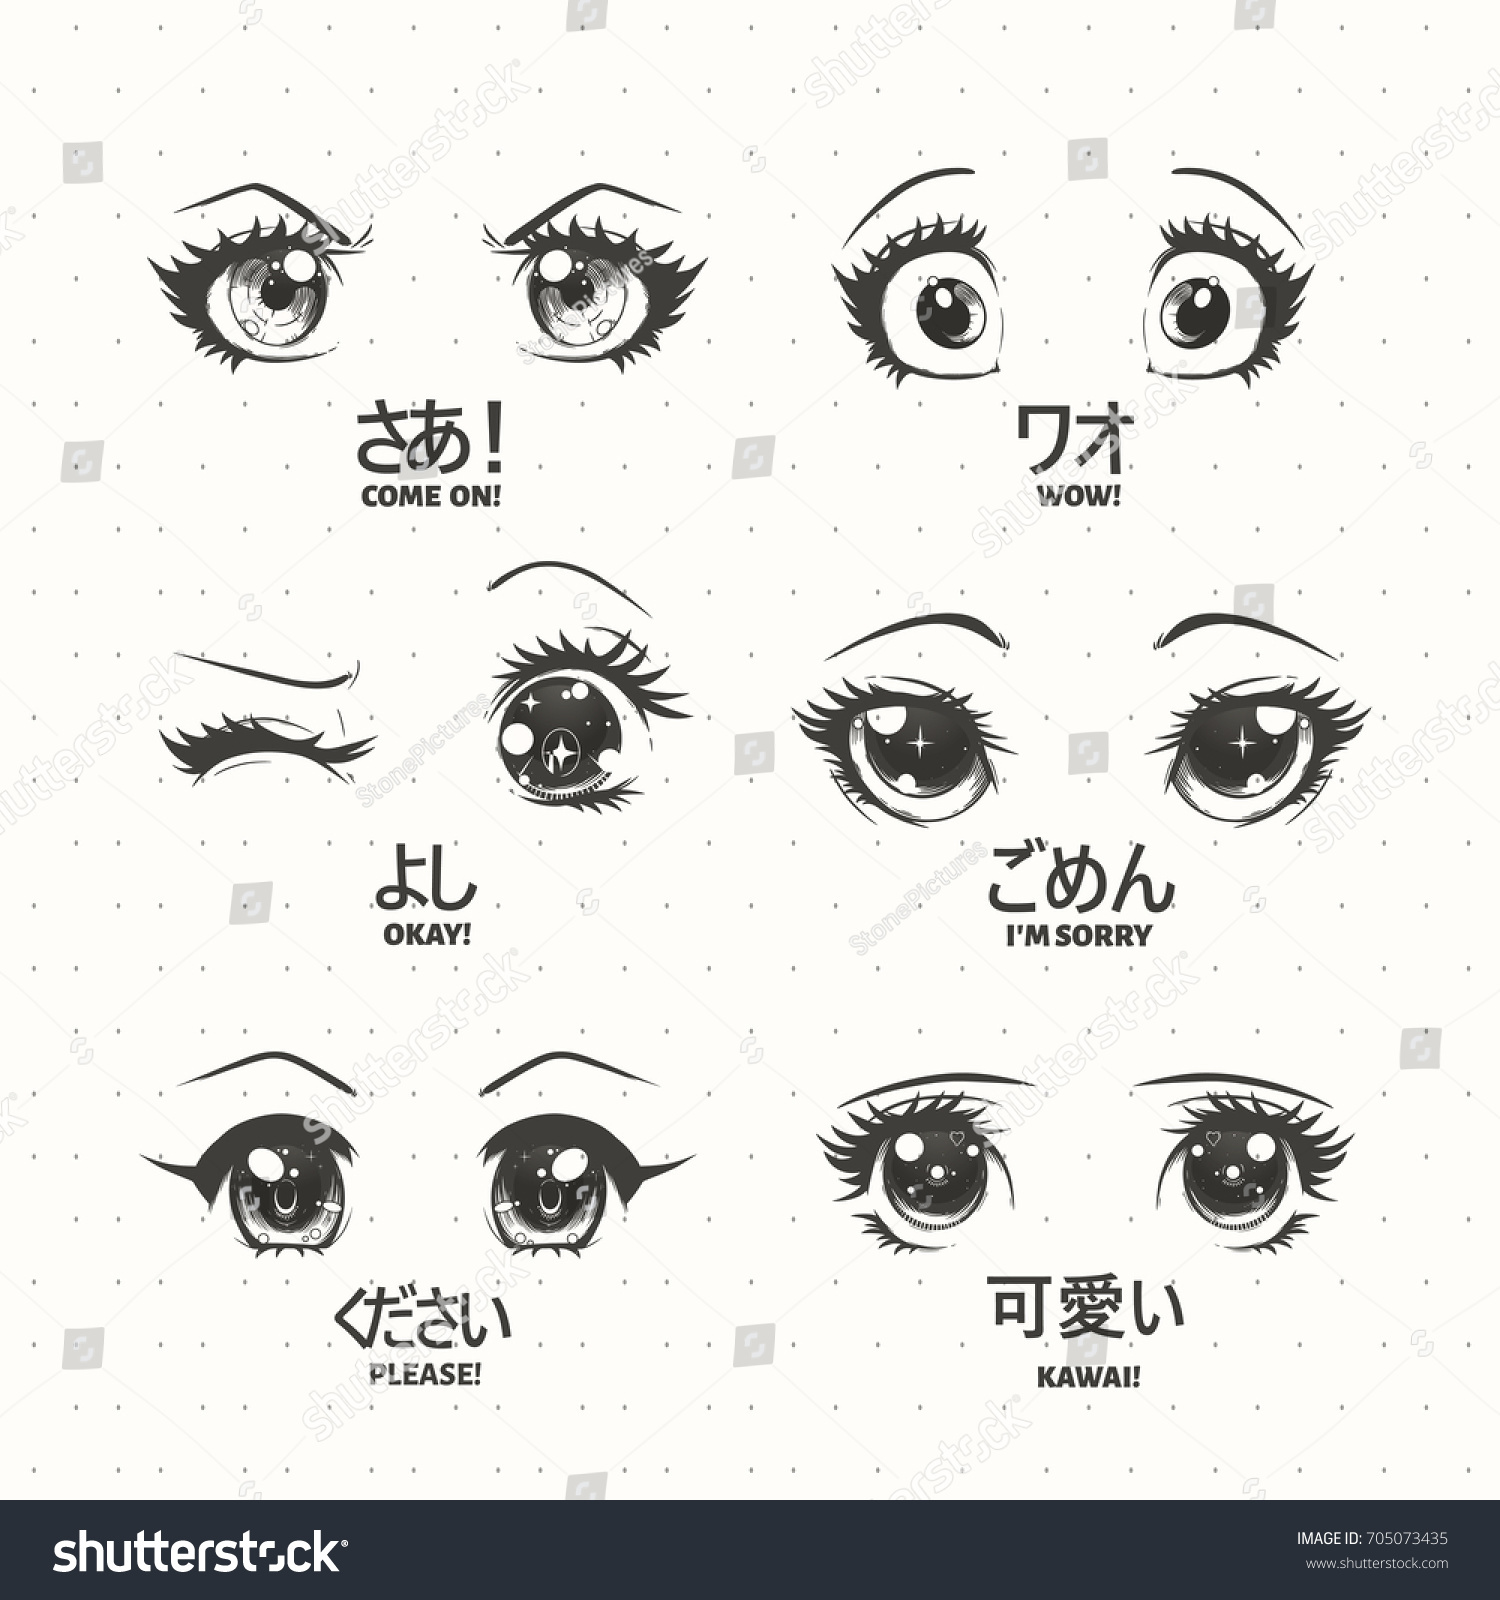 Anime Mouth Expressions